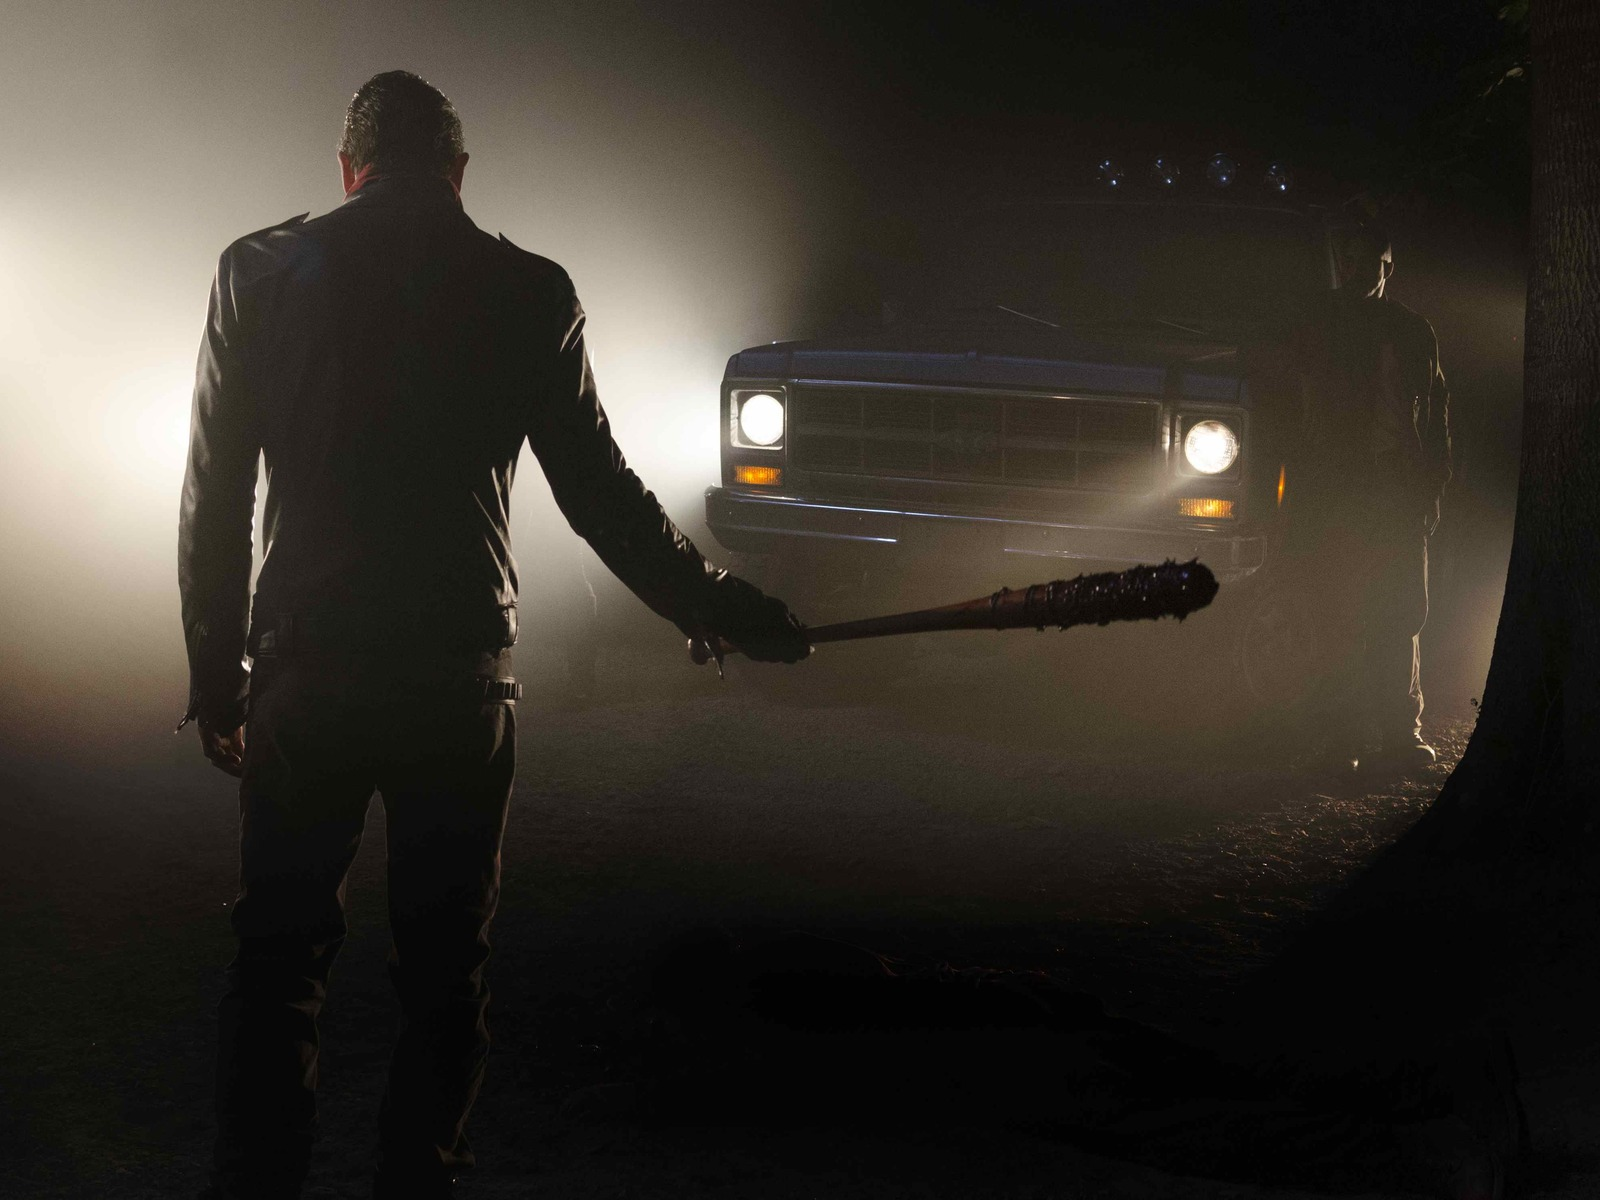 1600x1200 The Walking Dead Season 7 Negan 1600x1200 Resolution Hd